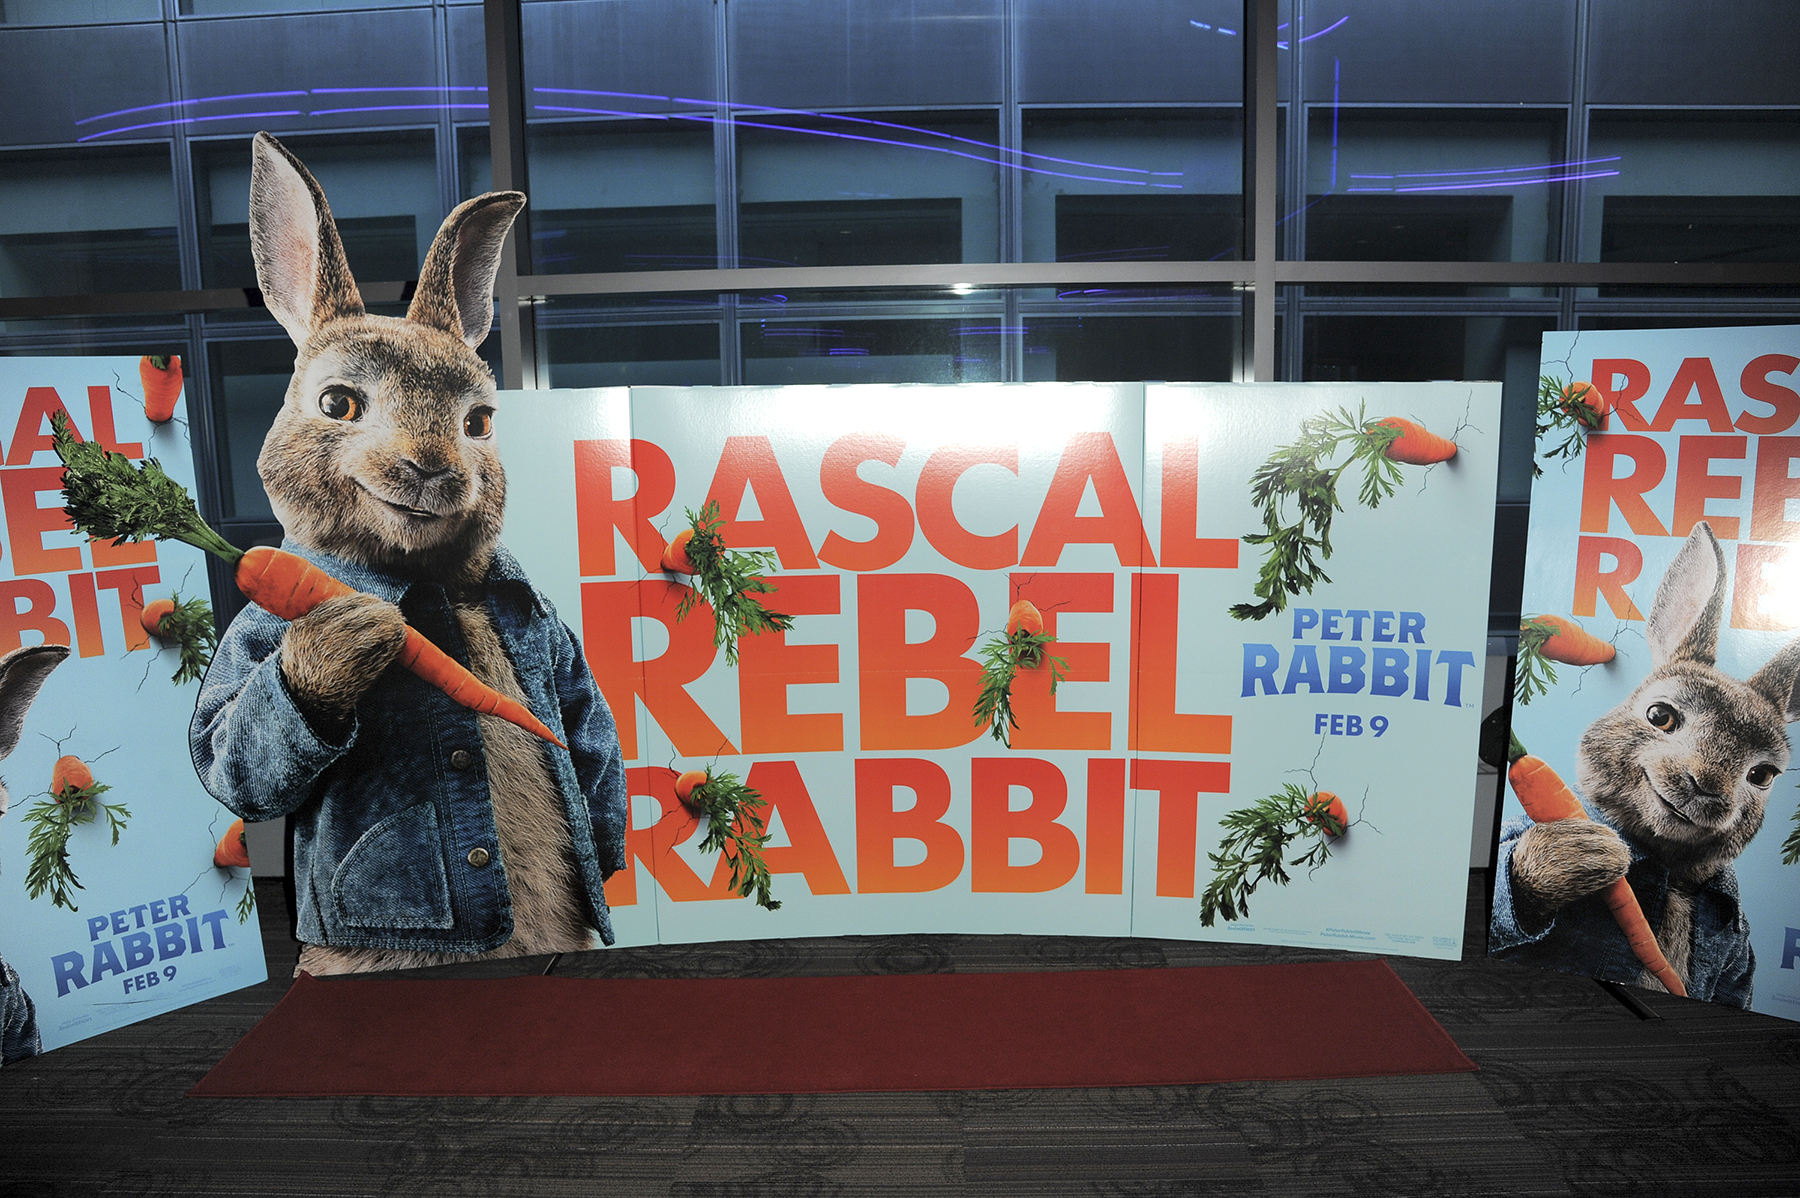 Peter Rabbit promo poster